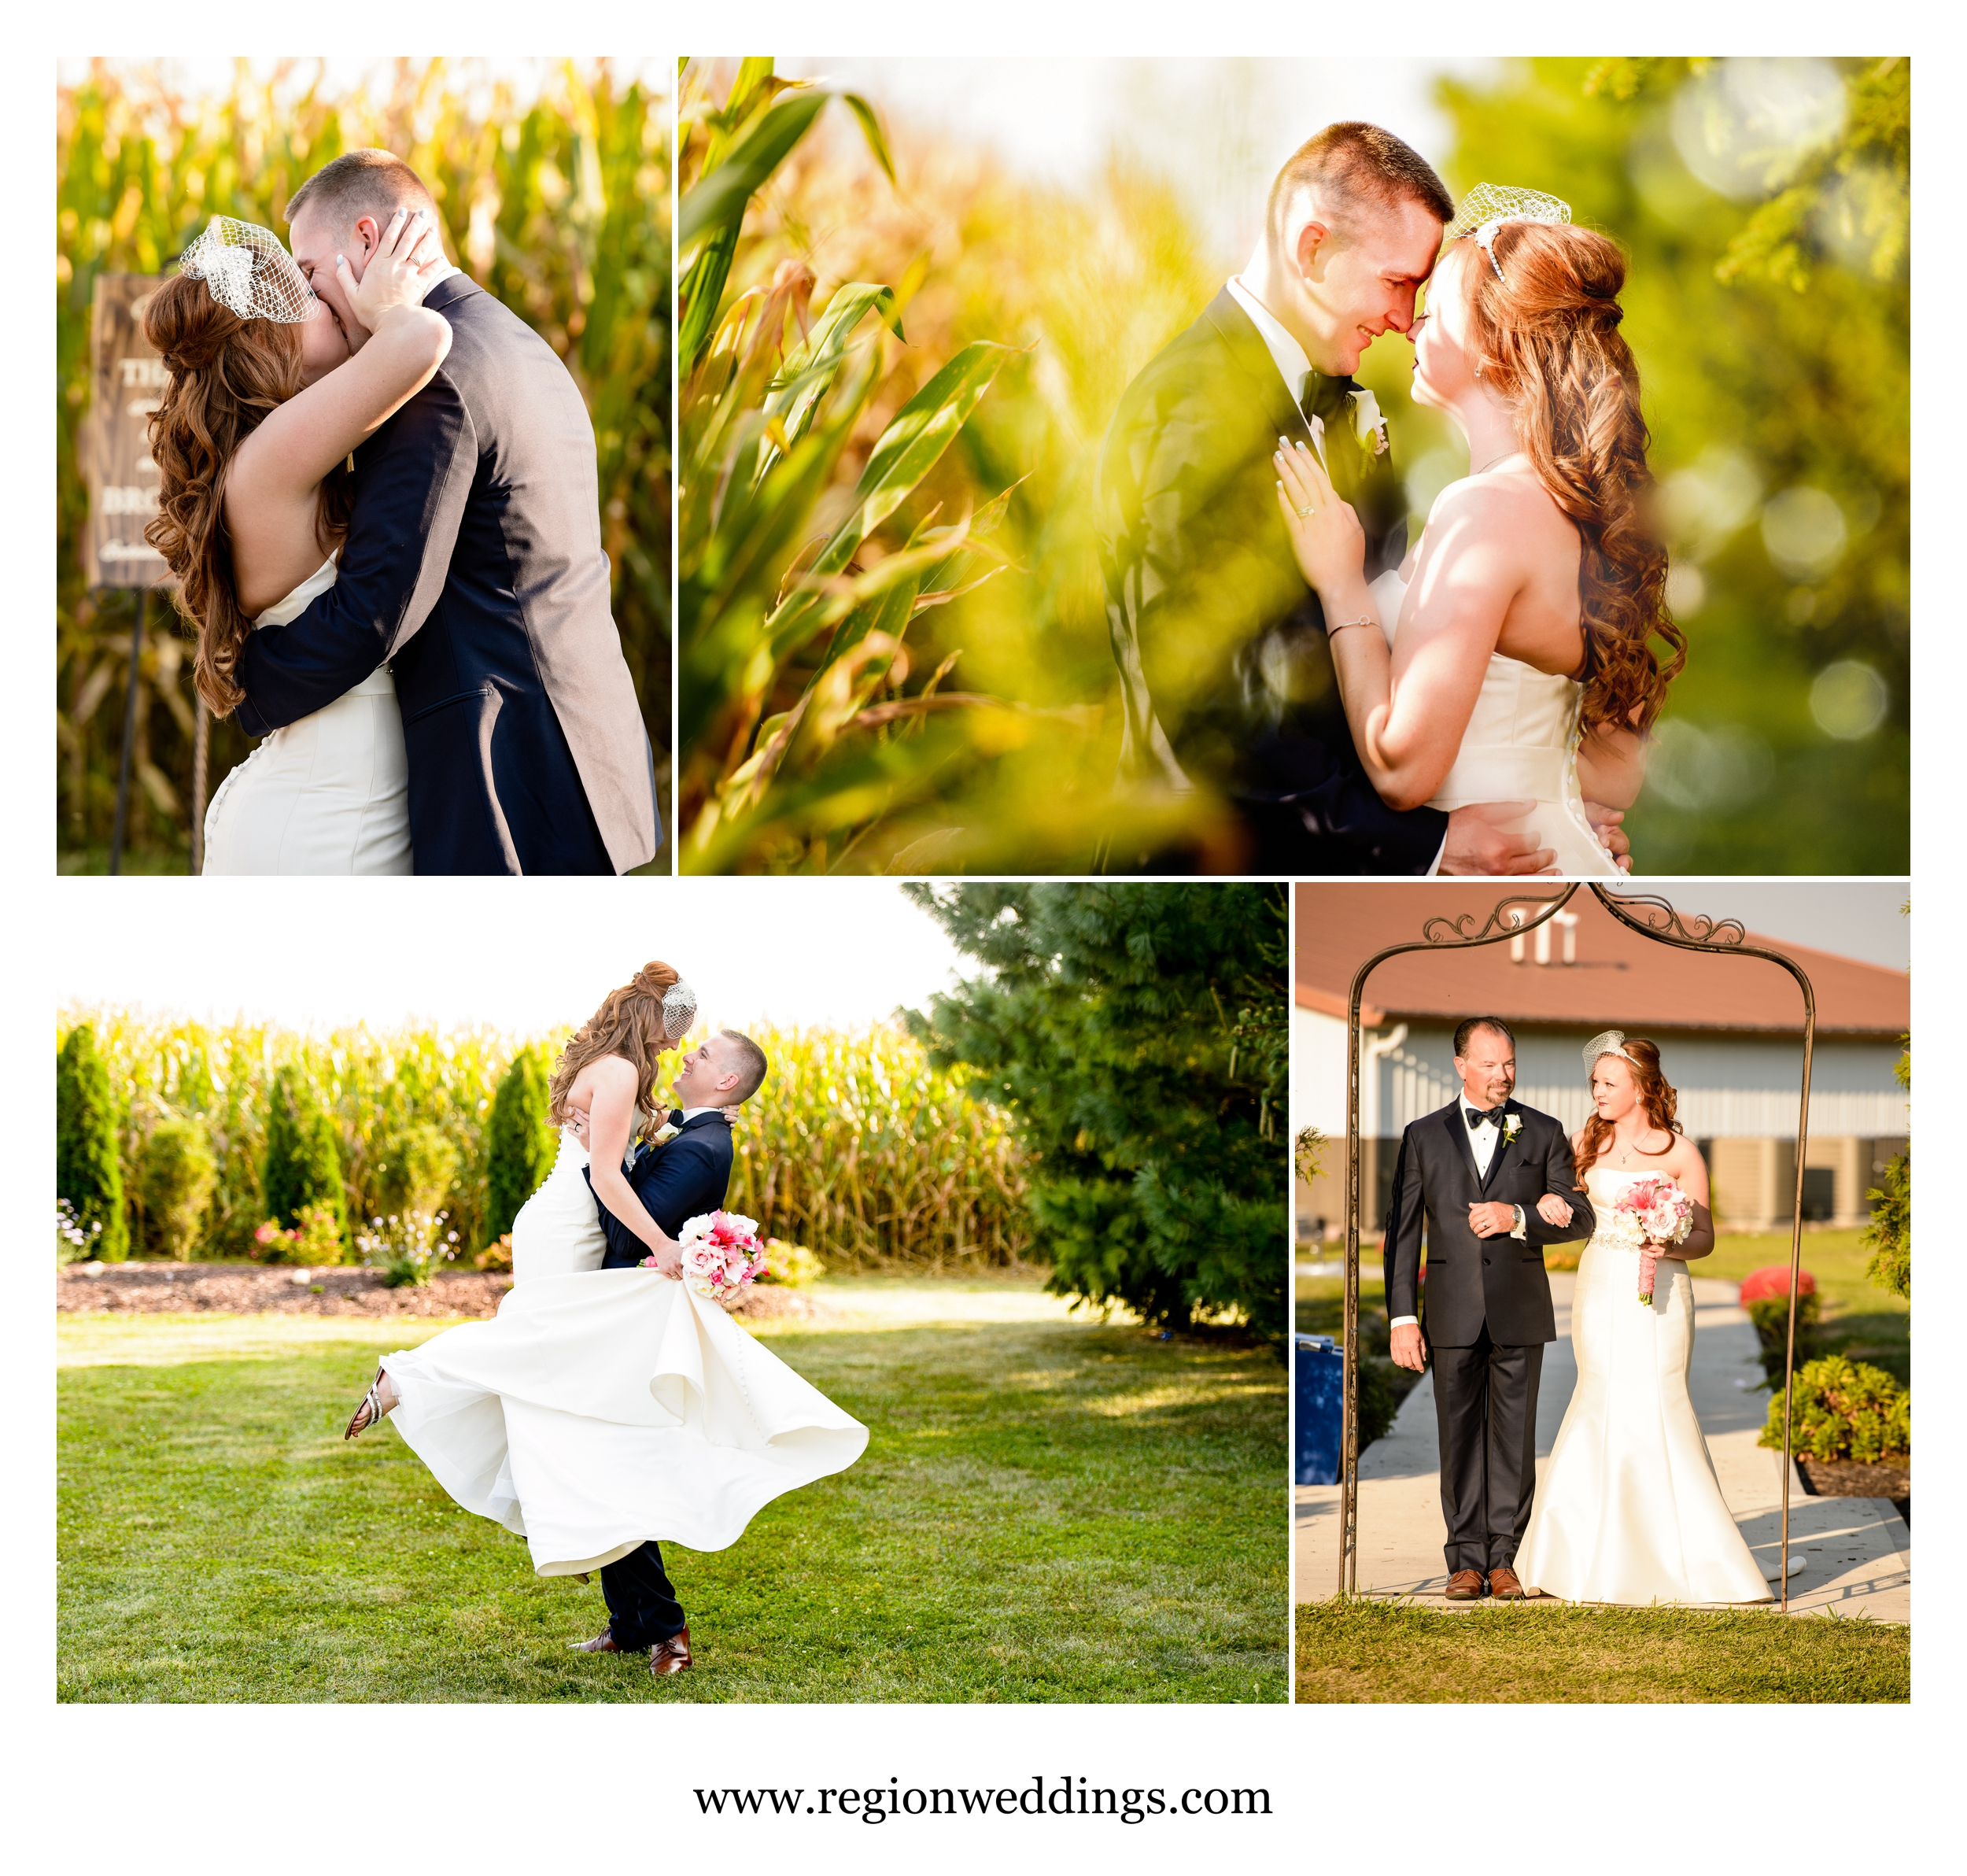 Outdoor wedding at Meadow Springs Manor.